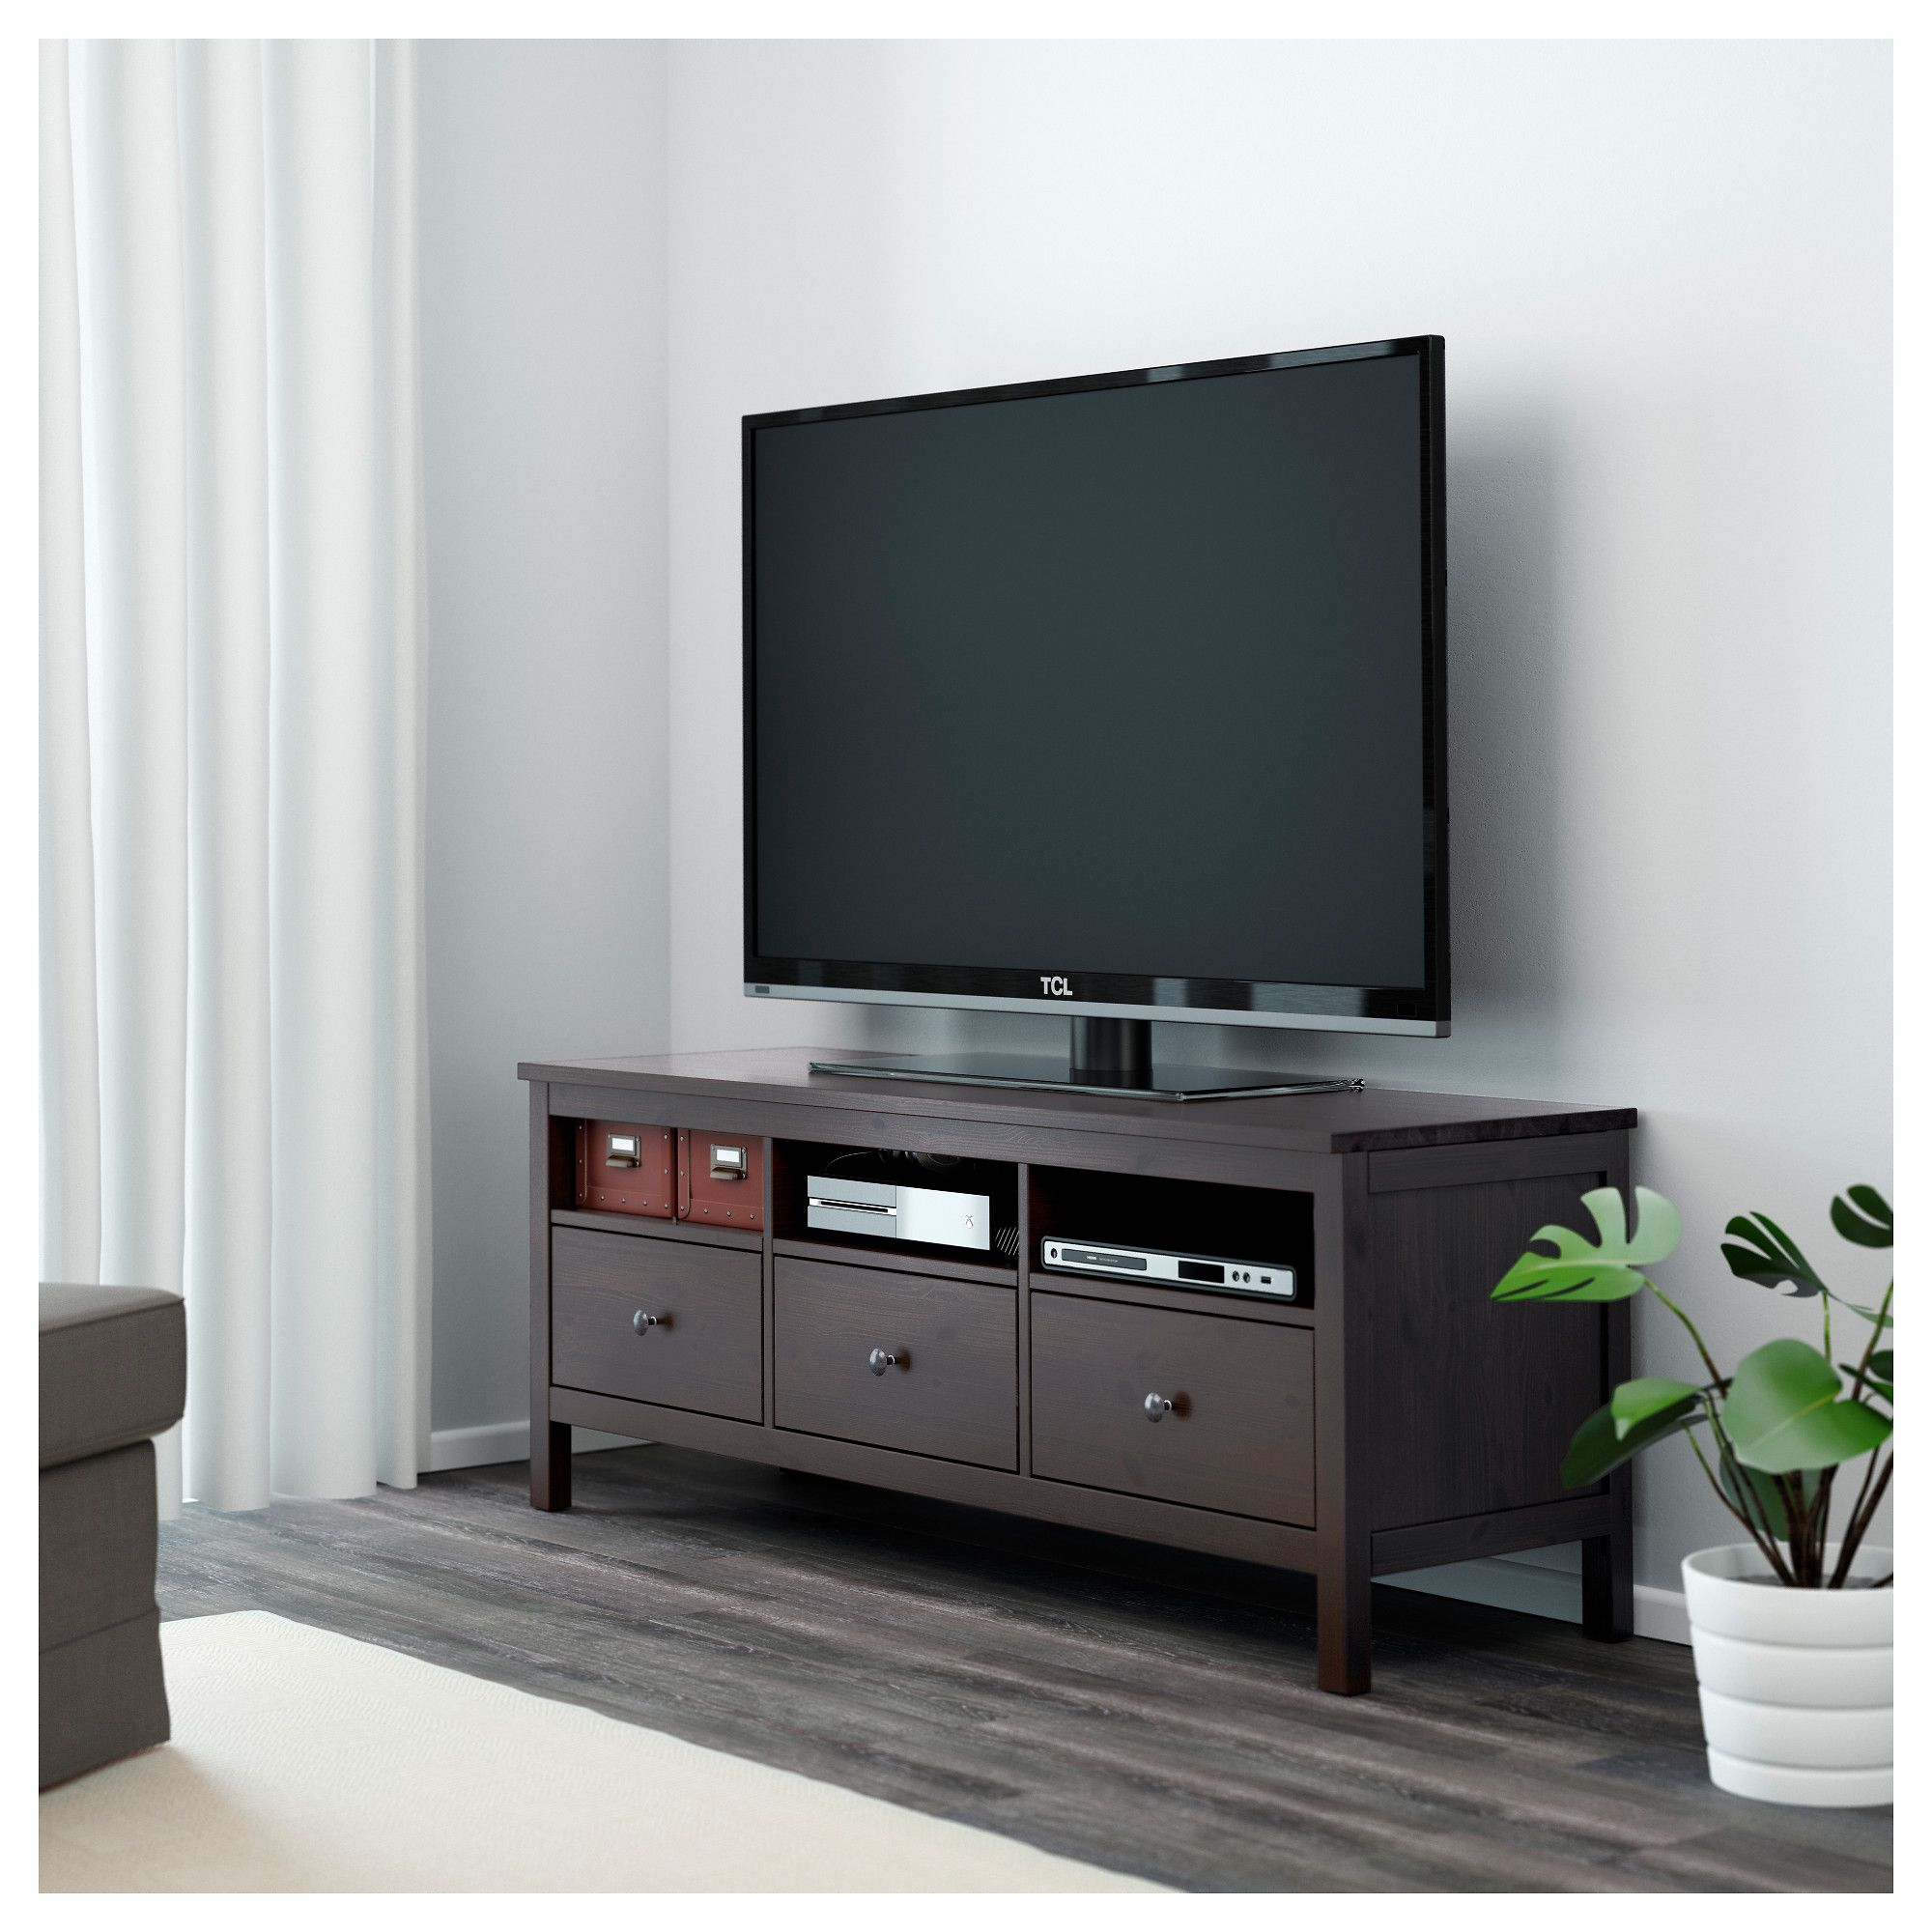 Furniture And Home Furnishings Products In 2019 Tv